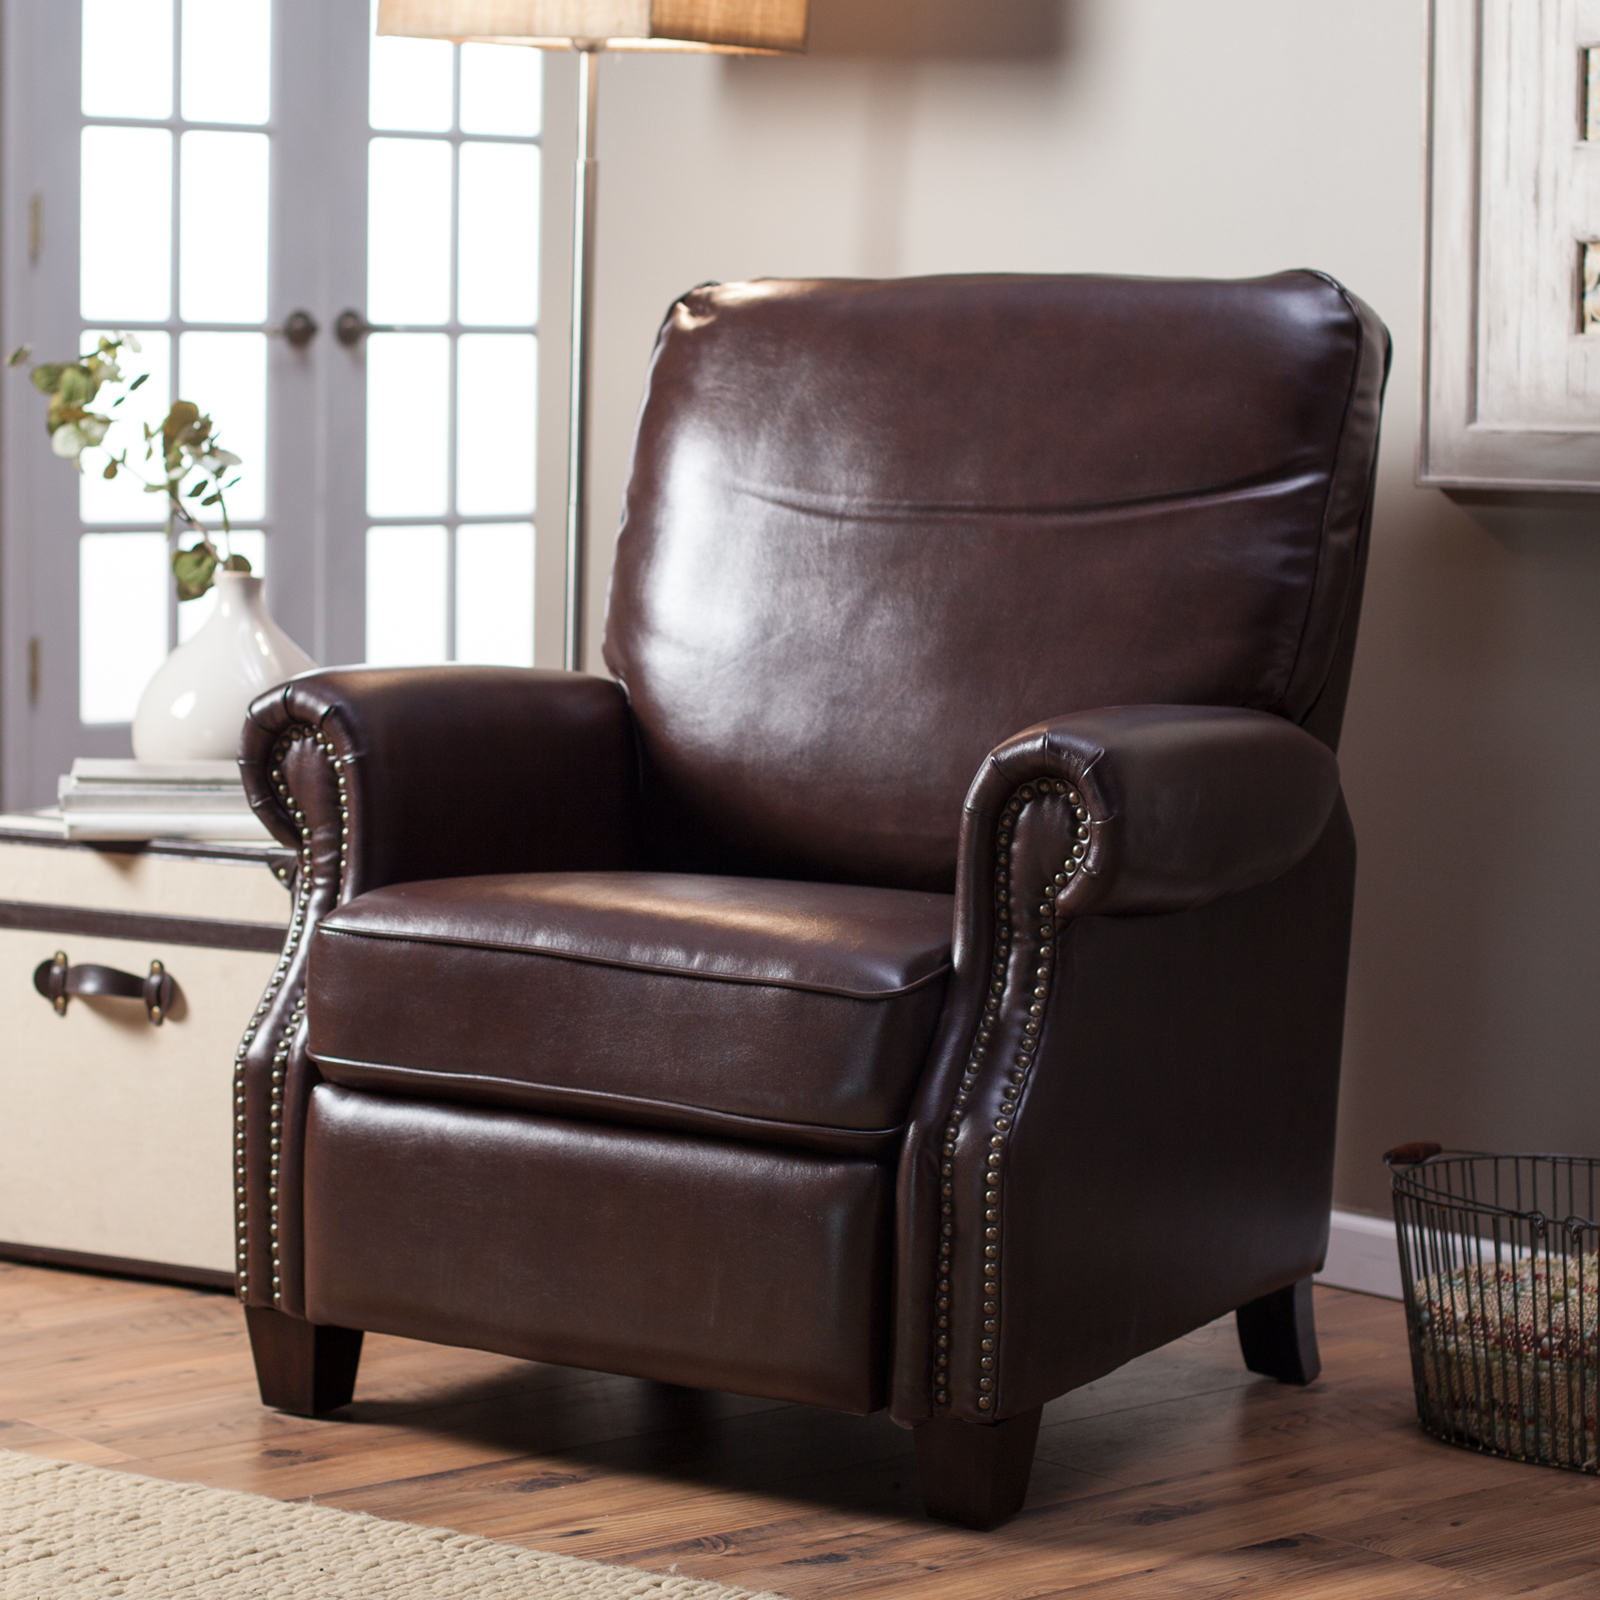 & Barcalounger Ridley II Leather Recliner with Nailheads | Hayneedle islam-shia.org